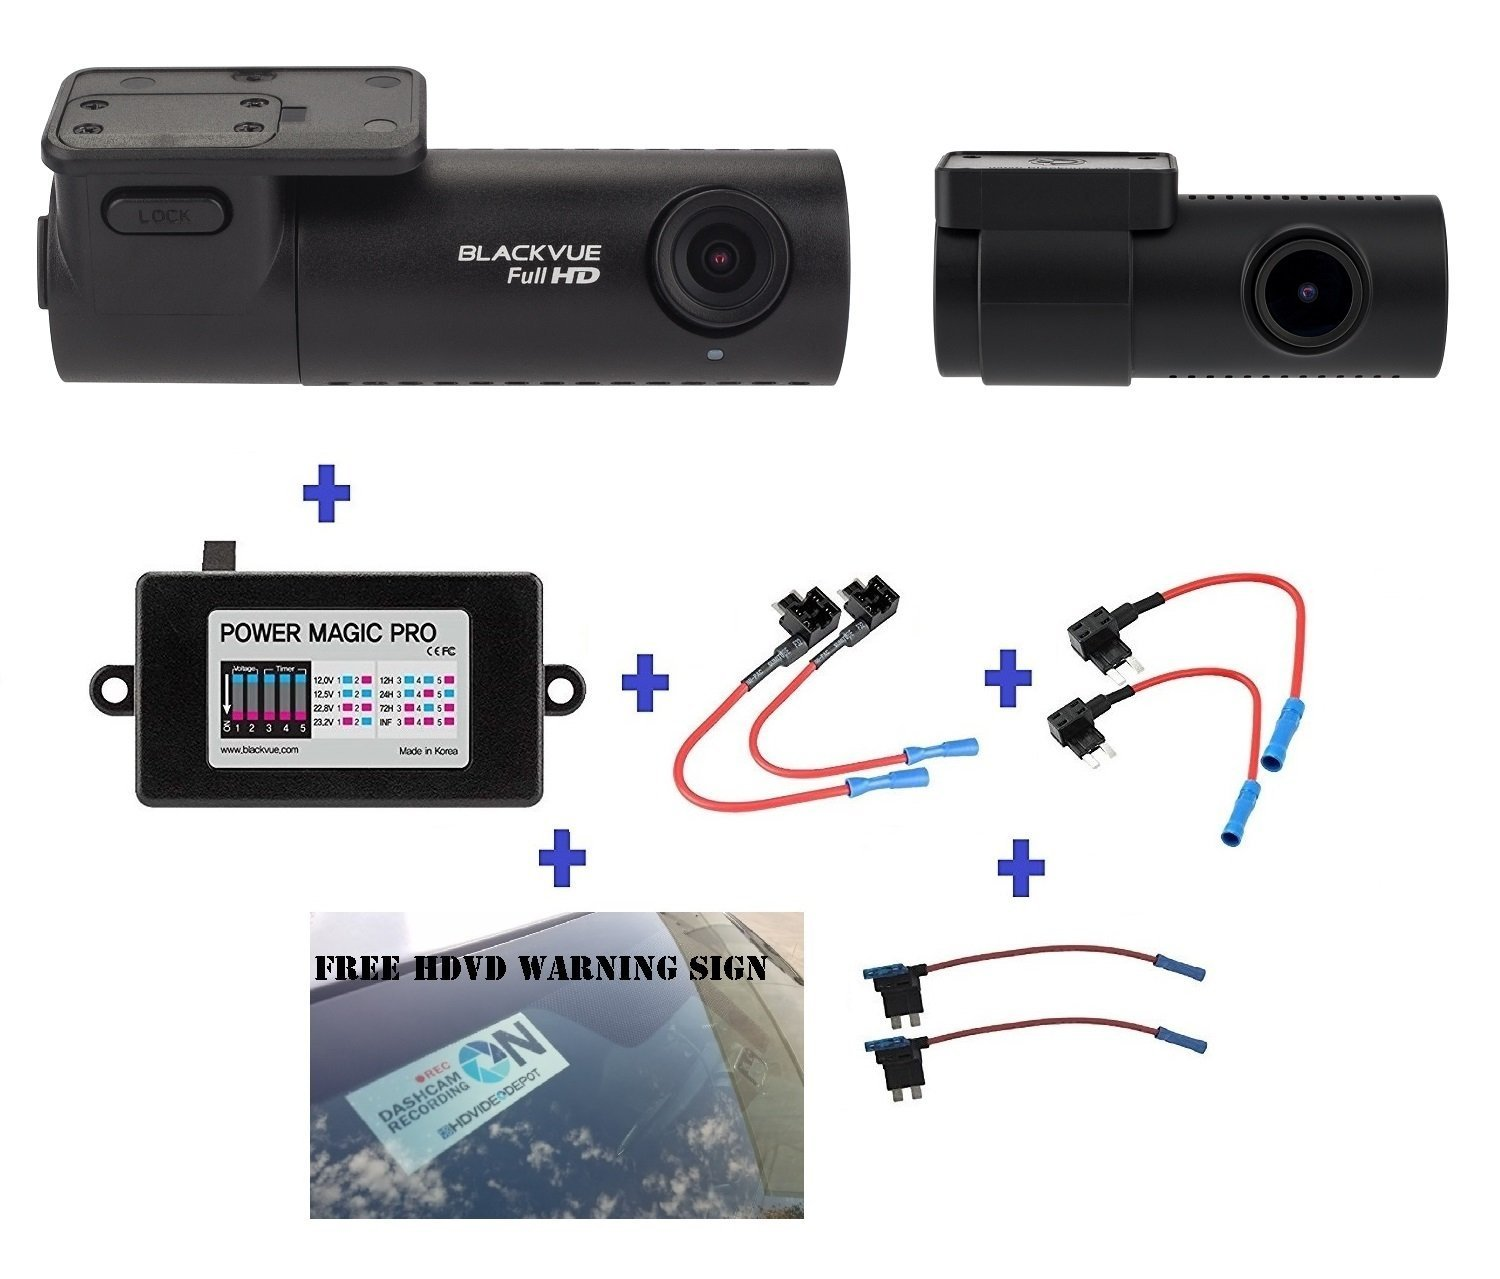 Blackvue DR590-2CH 64GB, Car Black Box/Car DVR Recorder, FULL HD 1080p Front and Rear, 30FPS, G Sensor, 64GB SD Card + Power Magic Pro + Fuse taps + HDVD Warning Sign Included